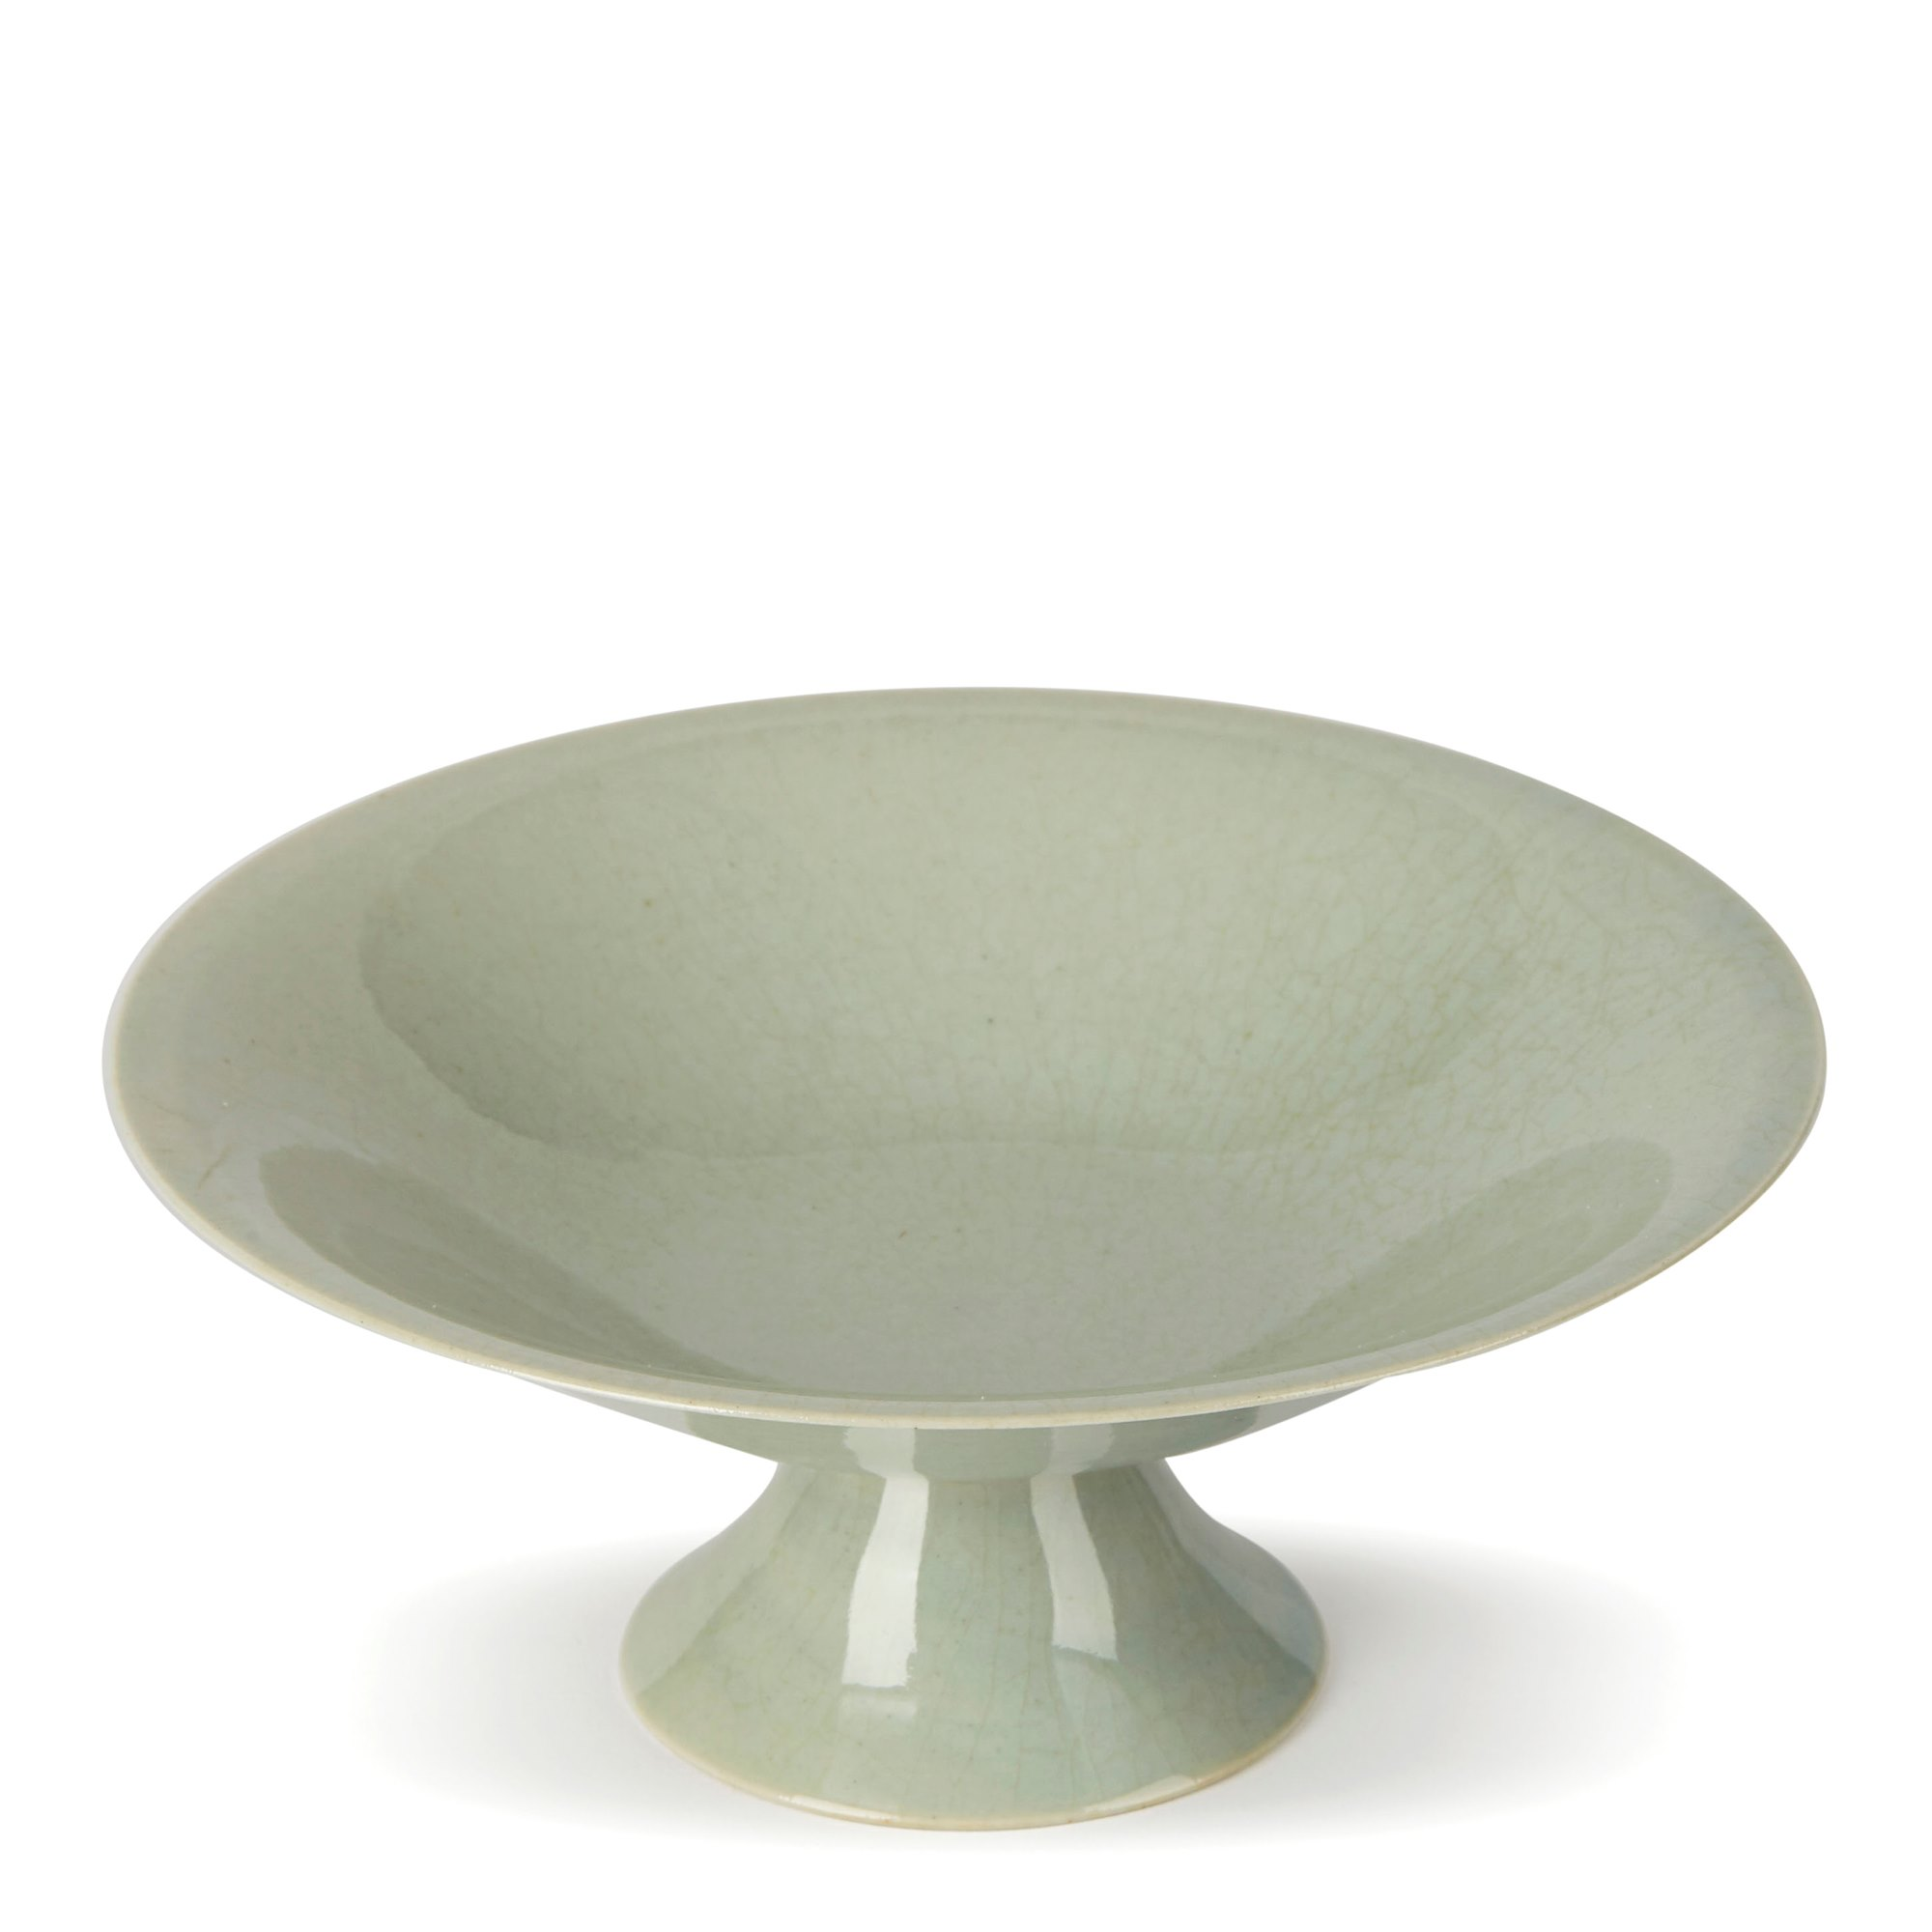 WILLIAM MEHORNAY STUDIO POTTERY CELADON STEM DISH 1974/75 Circa 1974 - 1975